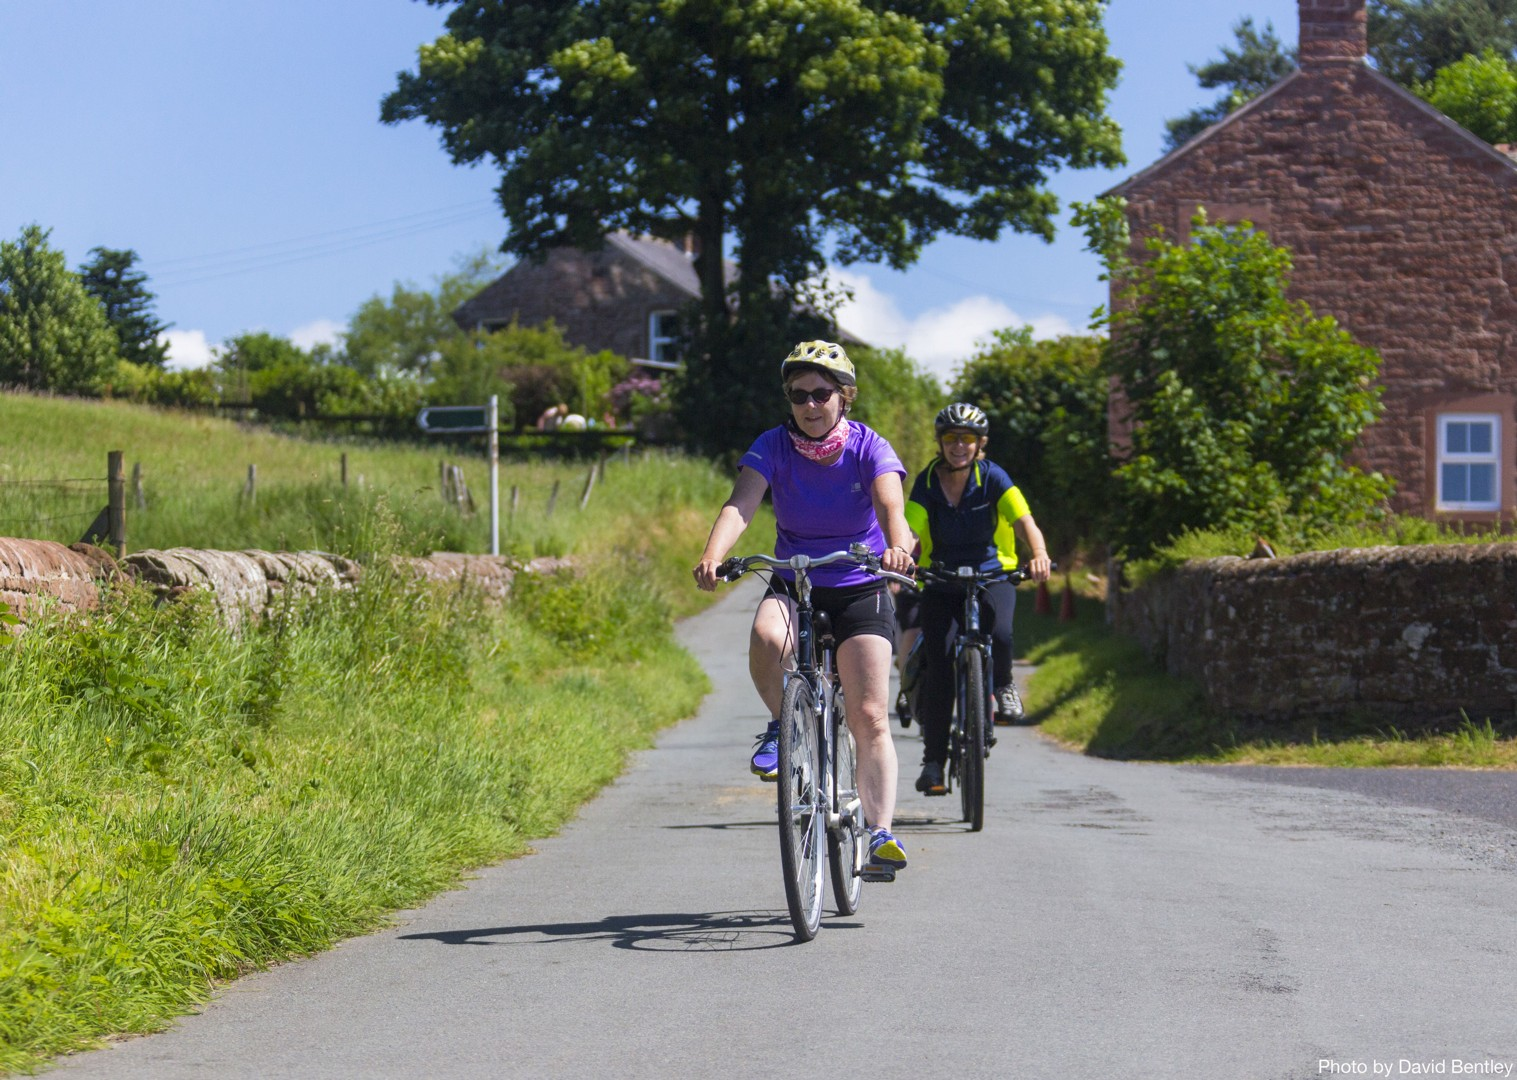 Cycle-Hadrians-Wall-UK-Hadrians-Cycleway-Self-Guided-Leisure-Cycling-Holiday.jpg - UK - Hadrian's Cycleway - 6 Days Cycling - Self-Guided Leisure Cycling Holiday - Leisure Cycling